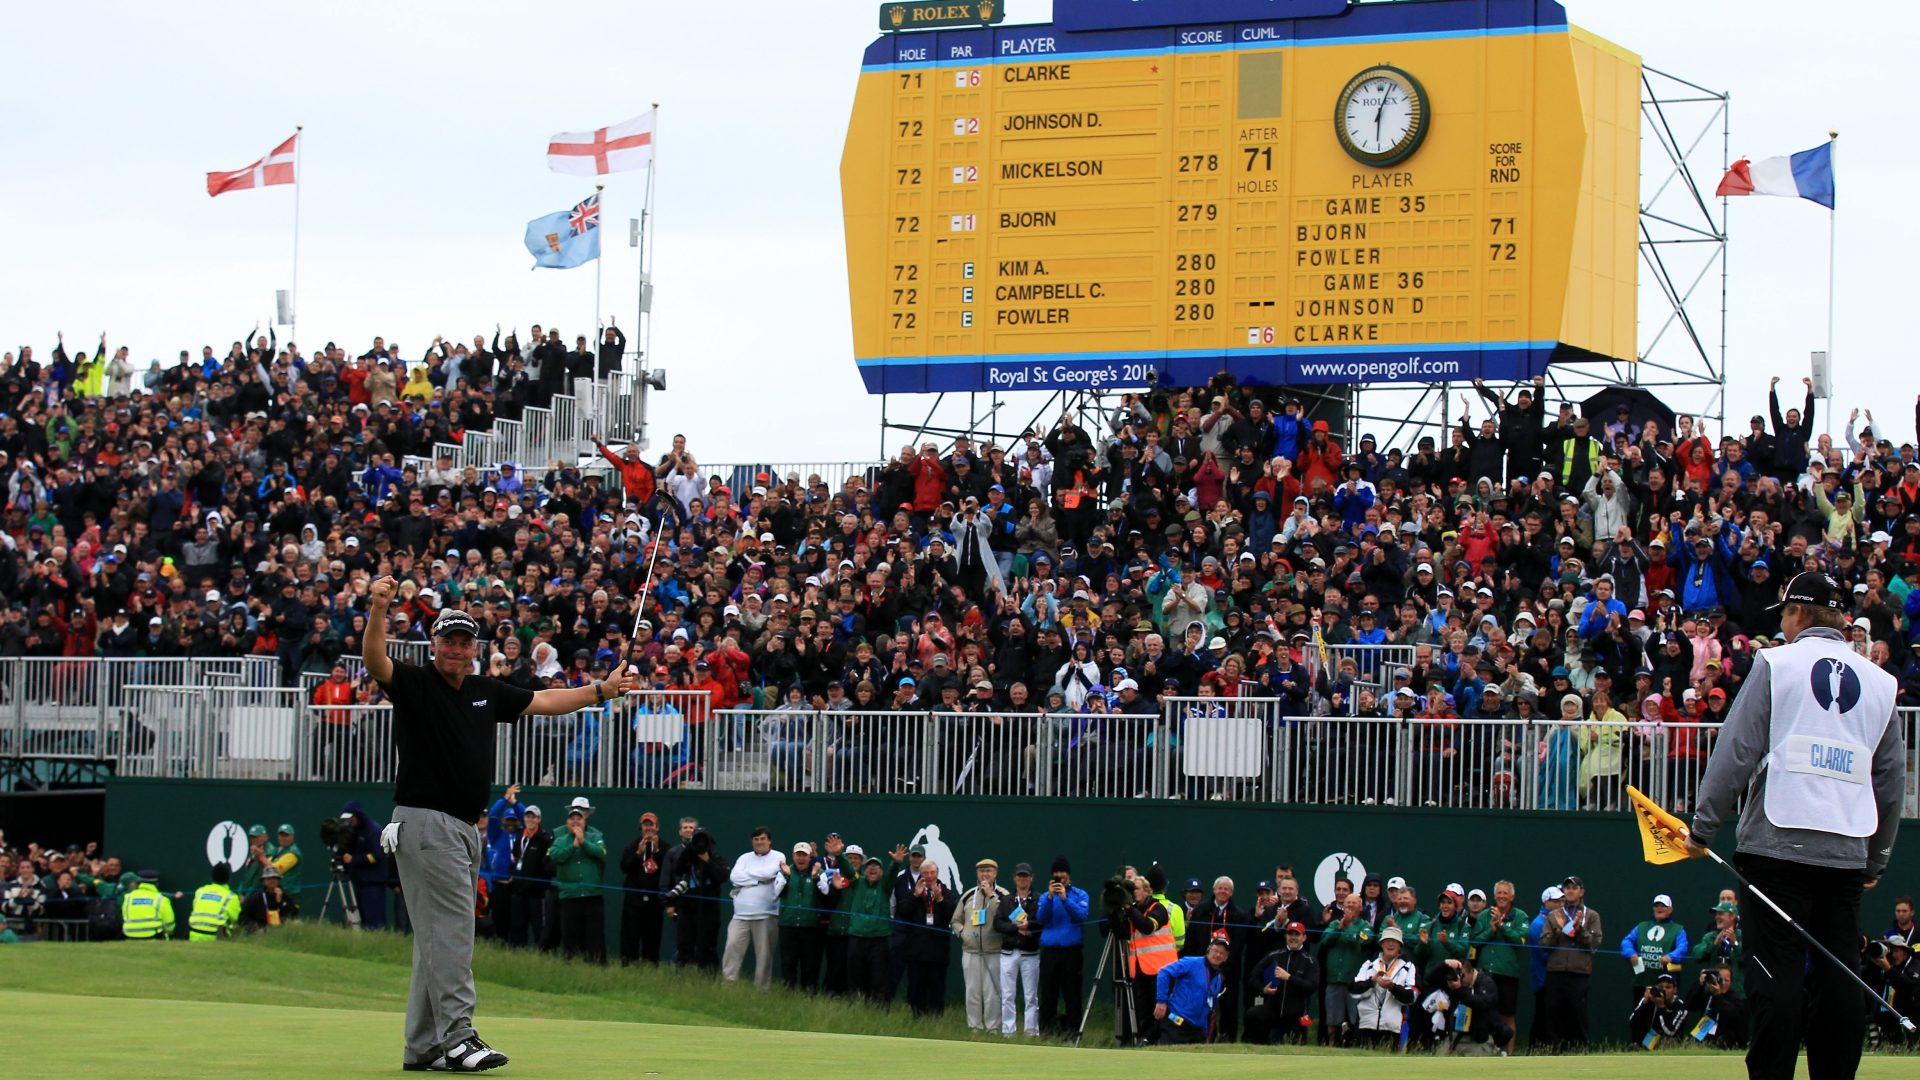 SANDWICH, ENGLAND - JULY 17:   Darren Clarke of Northern Ireland celebrates winning the Open Championship on the 18th green during the final round of The 140th Open Championship at Royal St George's on July 17, 2011 in Sandwich, England. (Photo by David Cannon/R&A/R&A via Getty Images)